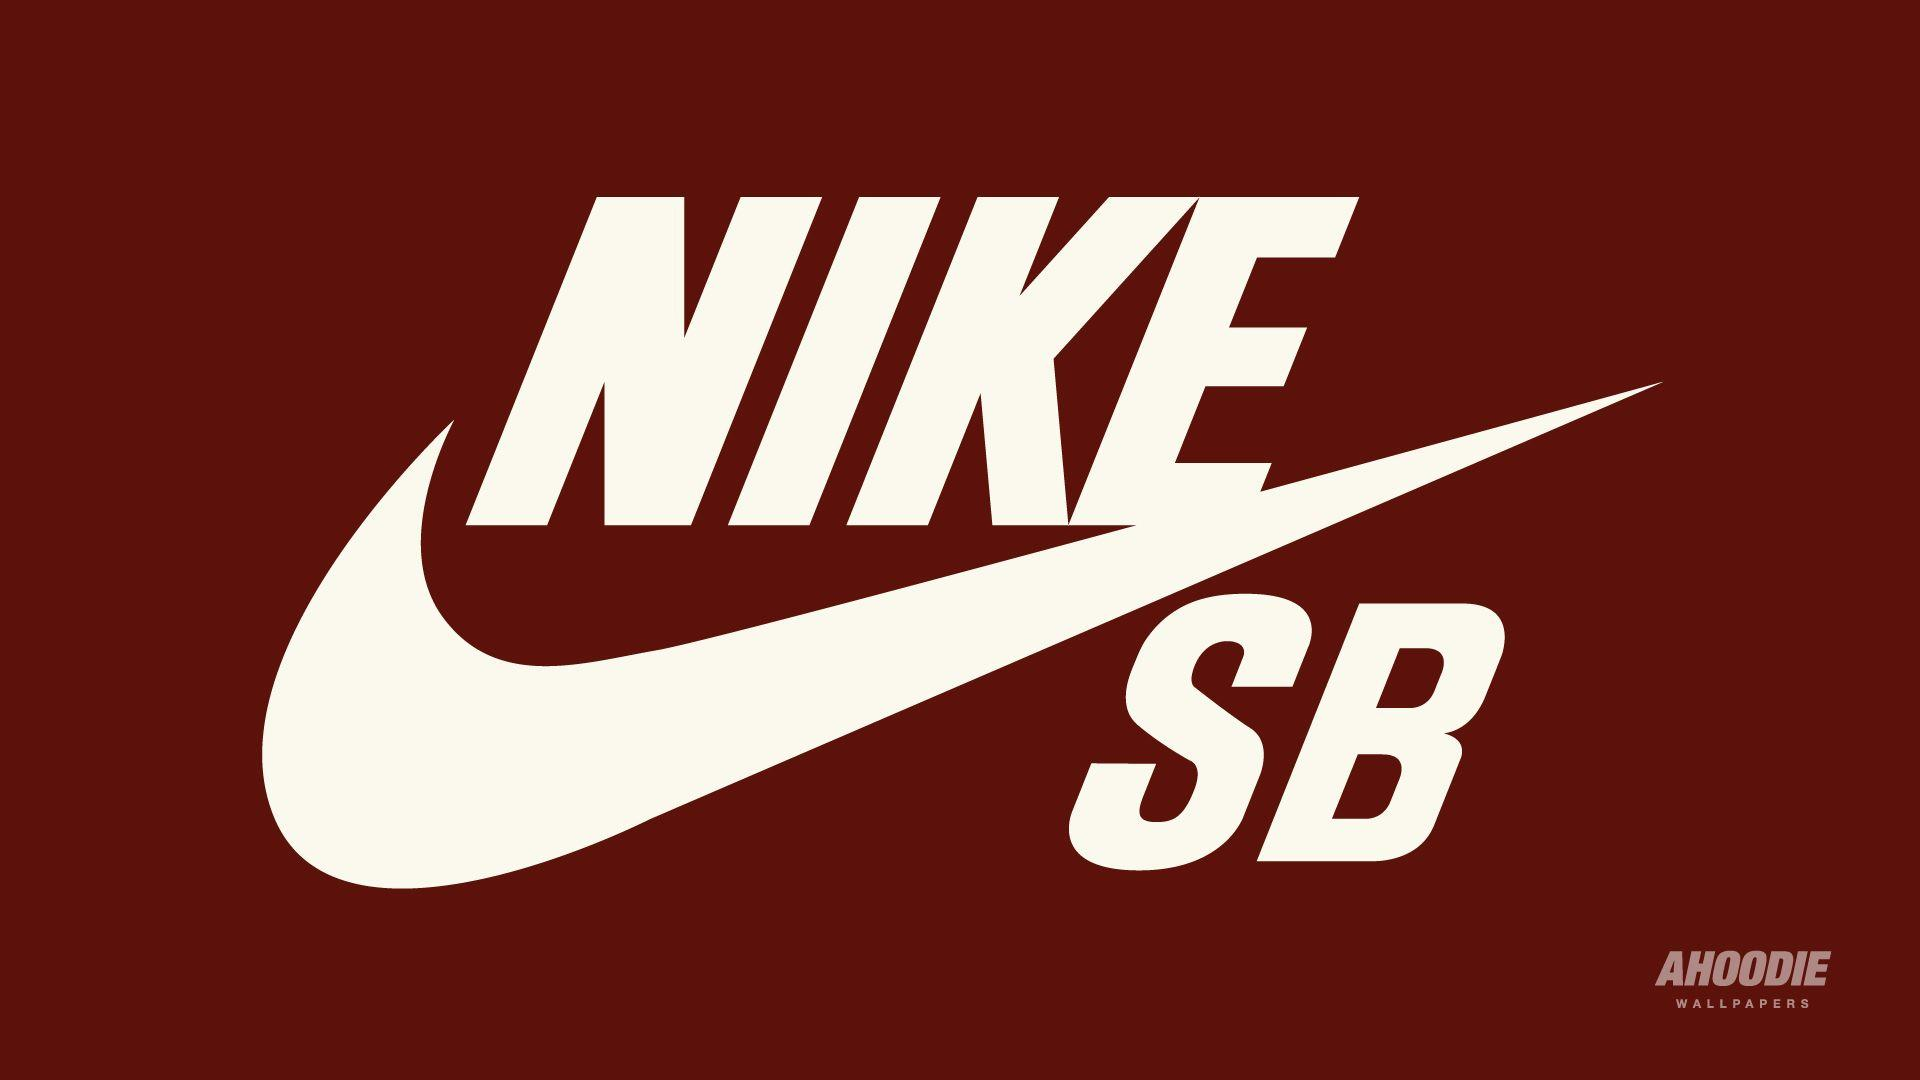 nike sb wallpaper halcyonnightscouk - photo #3